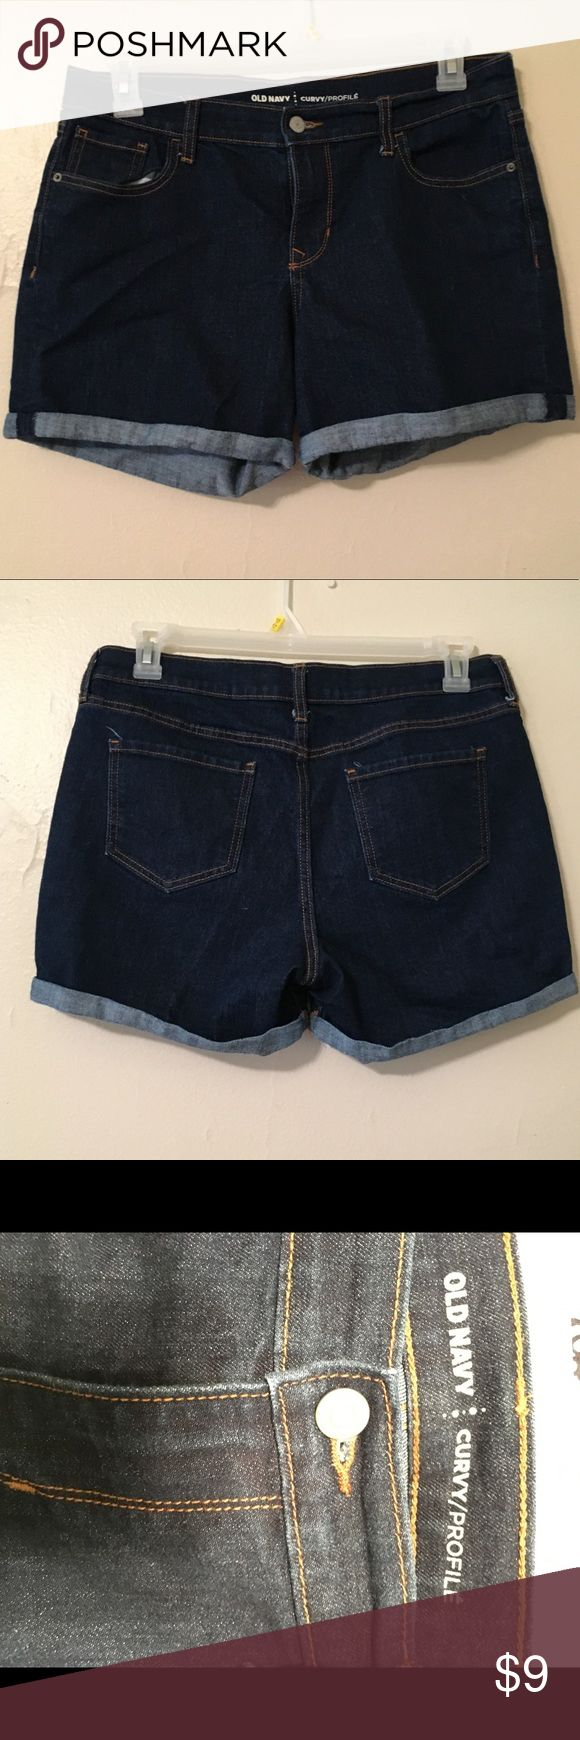 Old Navy Jean Shorts Excellent condition Old Navy Jean Shorts. Old Navy Shorts Jean Shorts